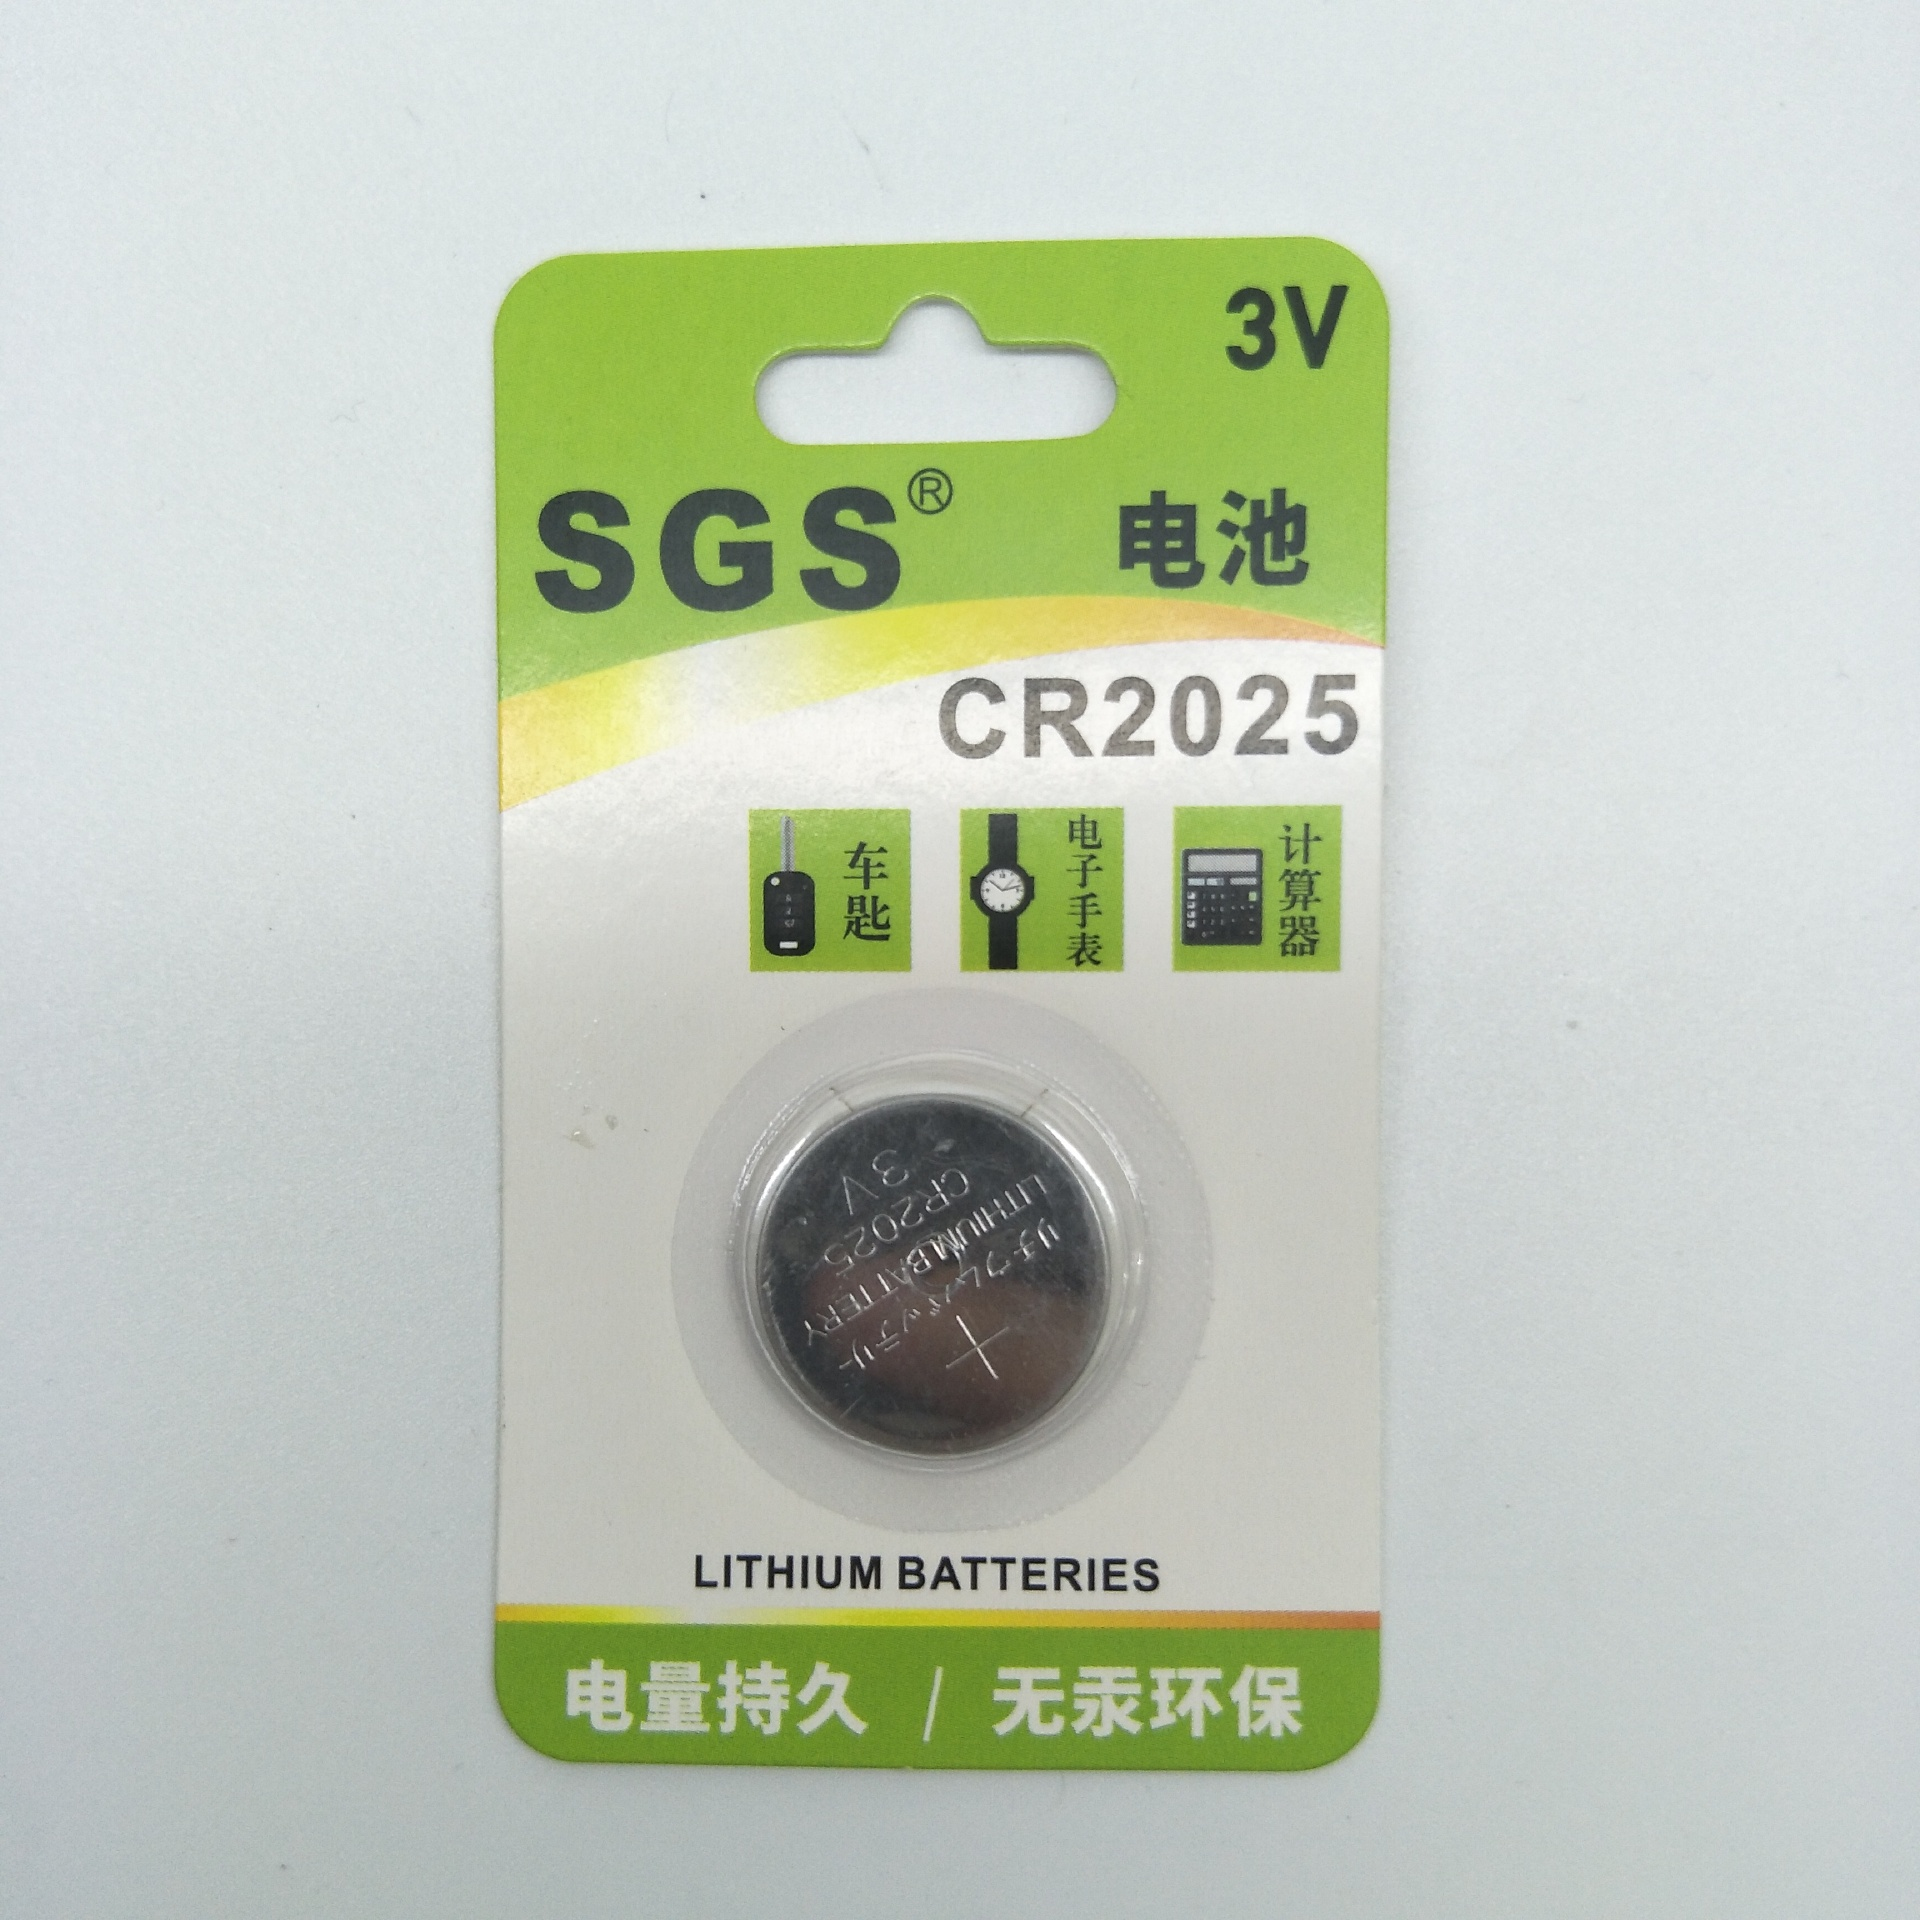 SGS lithium battery CR2025